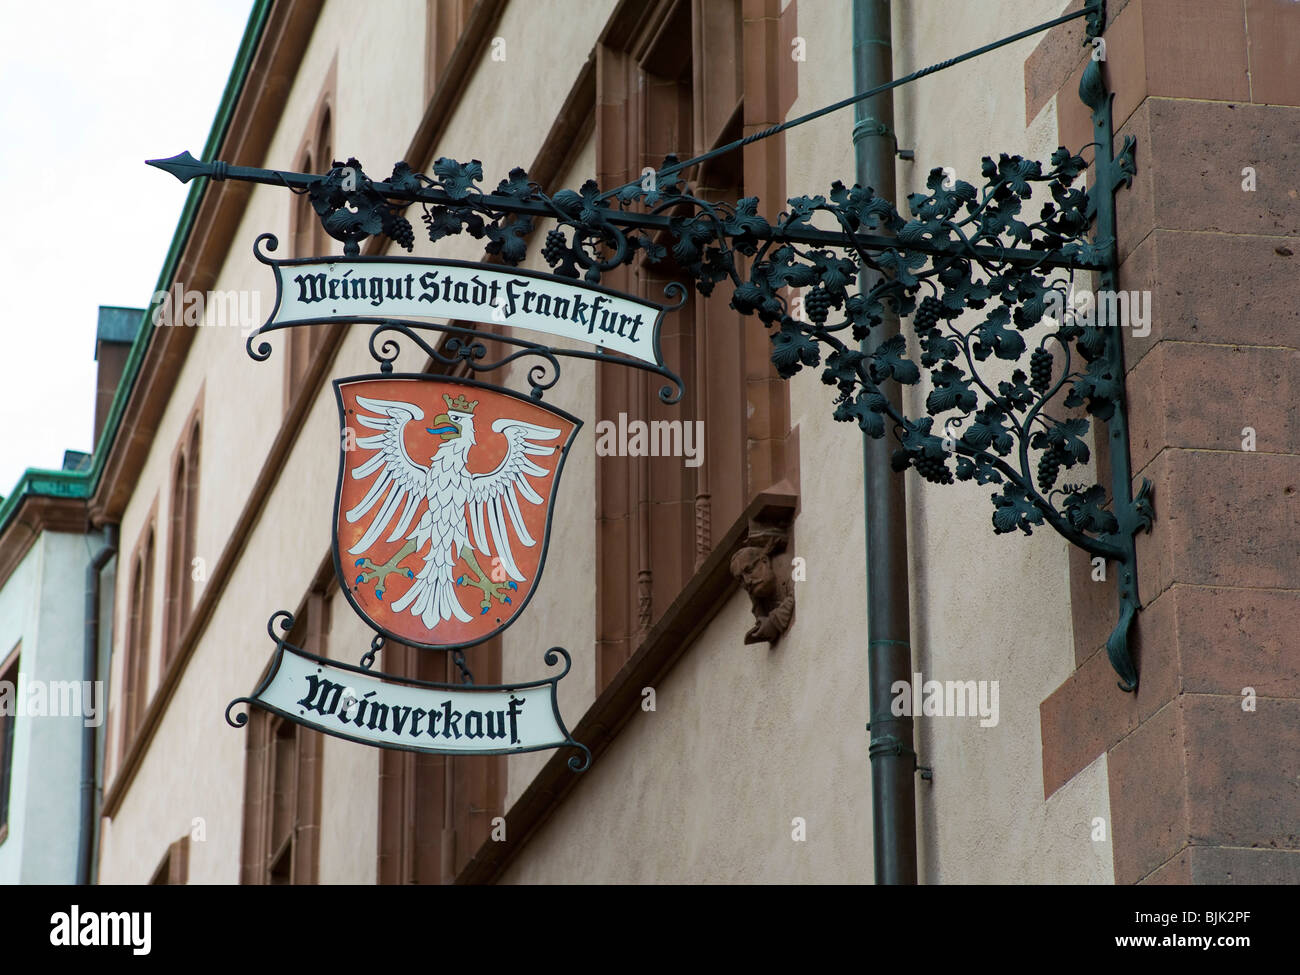 Winery of the City of Frankfurt, sign, Frankfurt, Hesse, Germany, Europe Stock Photo